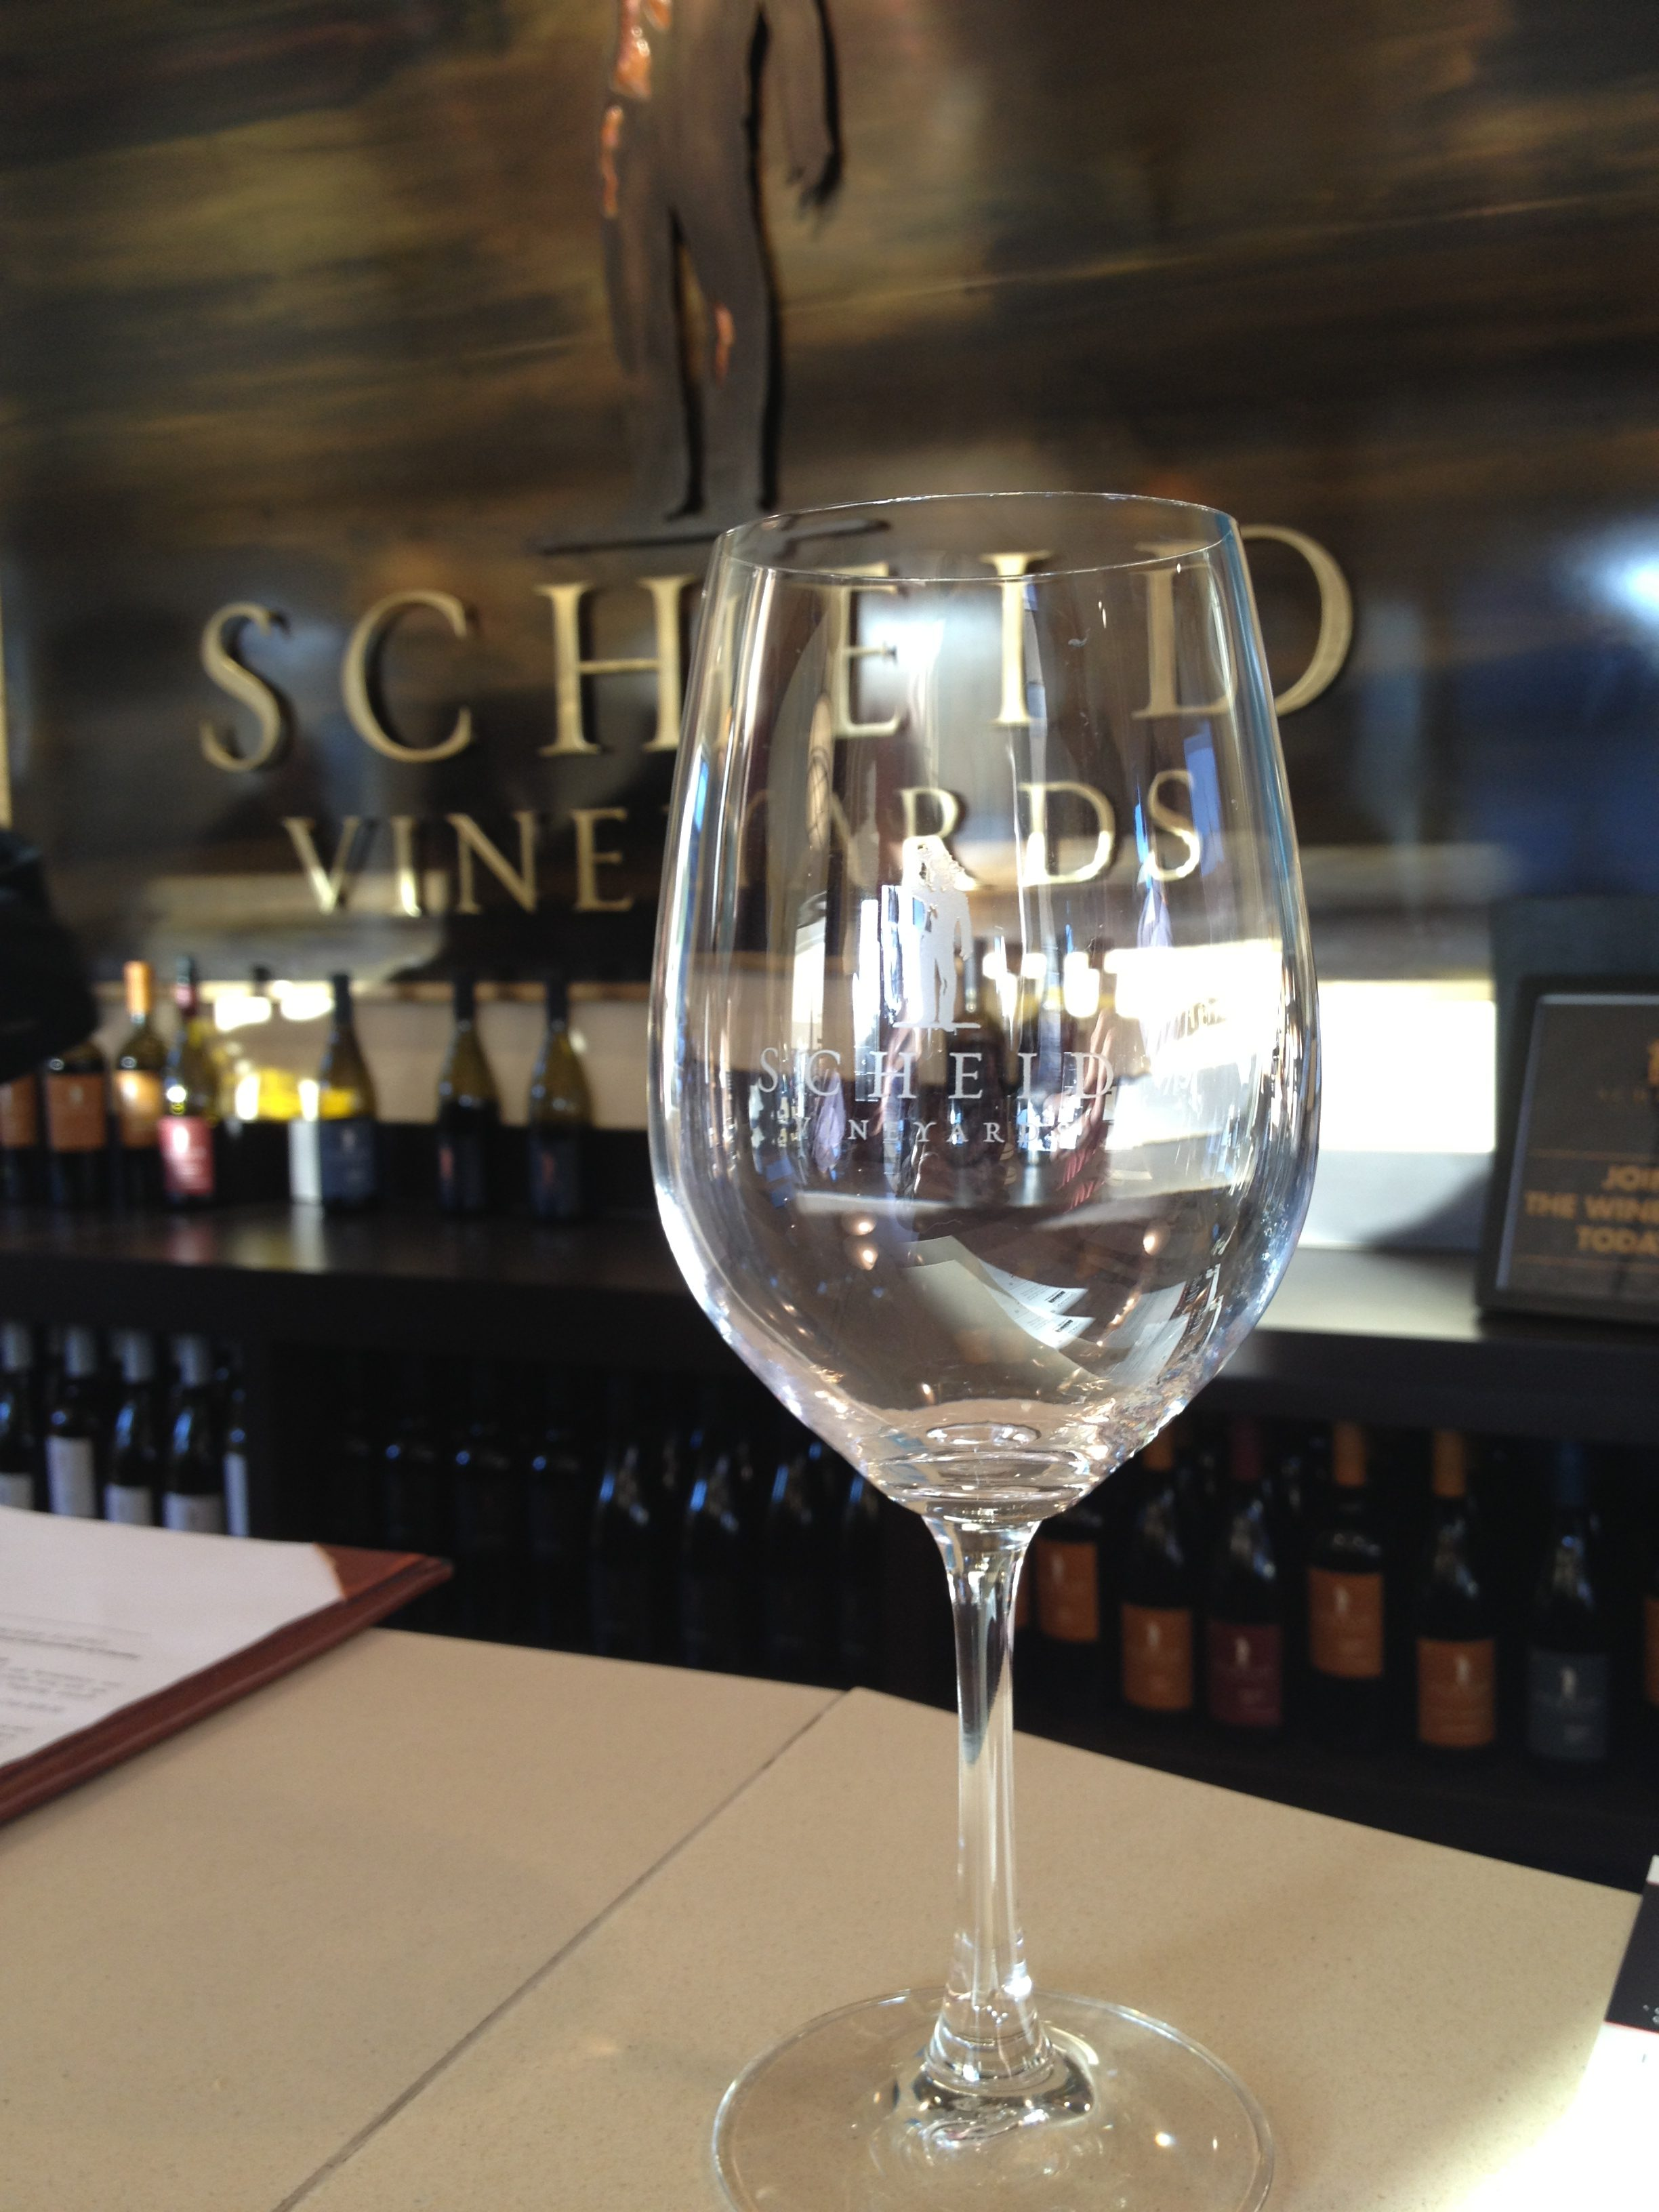 Schied Vineyards, Carmel